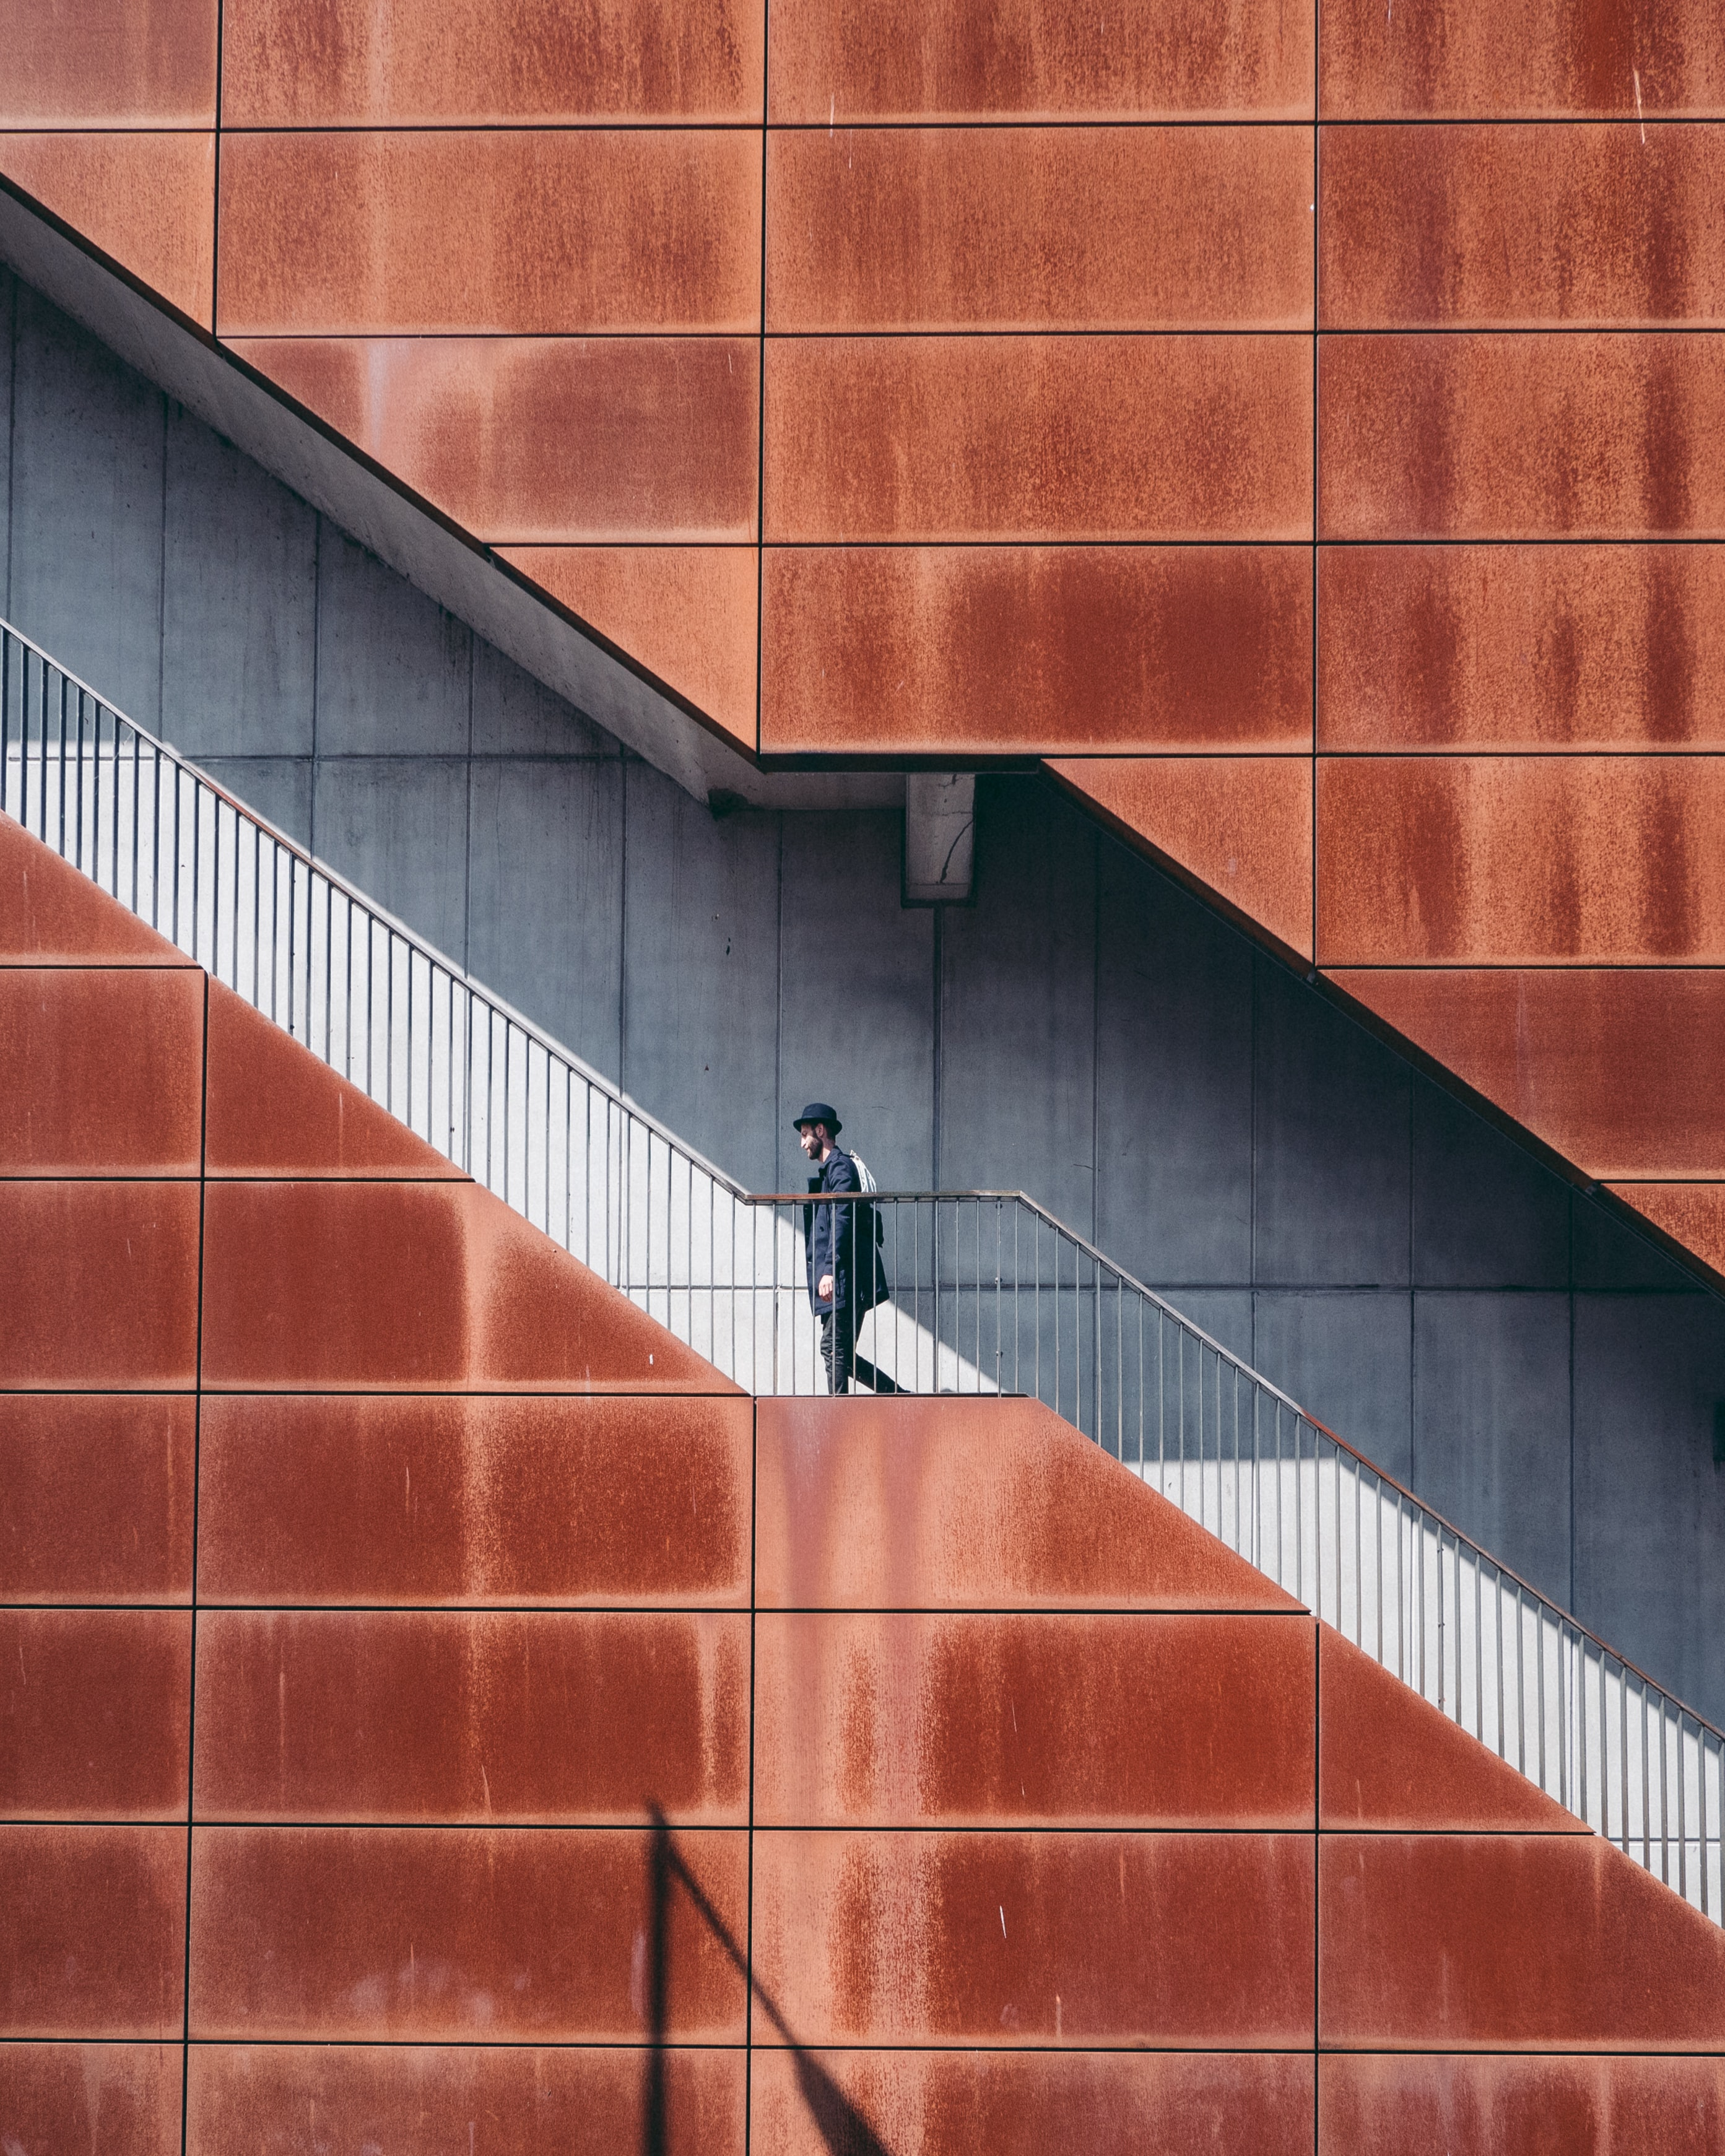 man walking on stairs at daytime